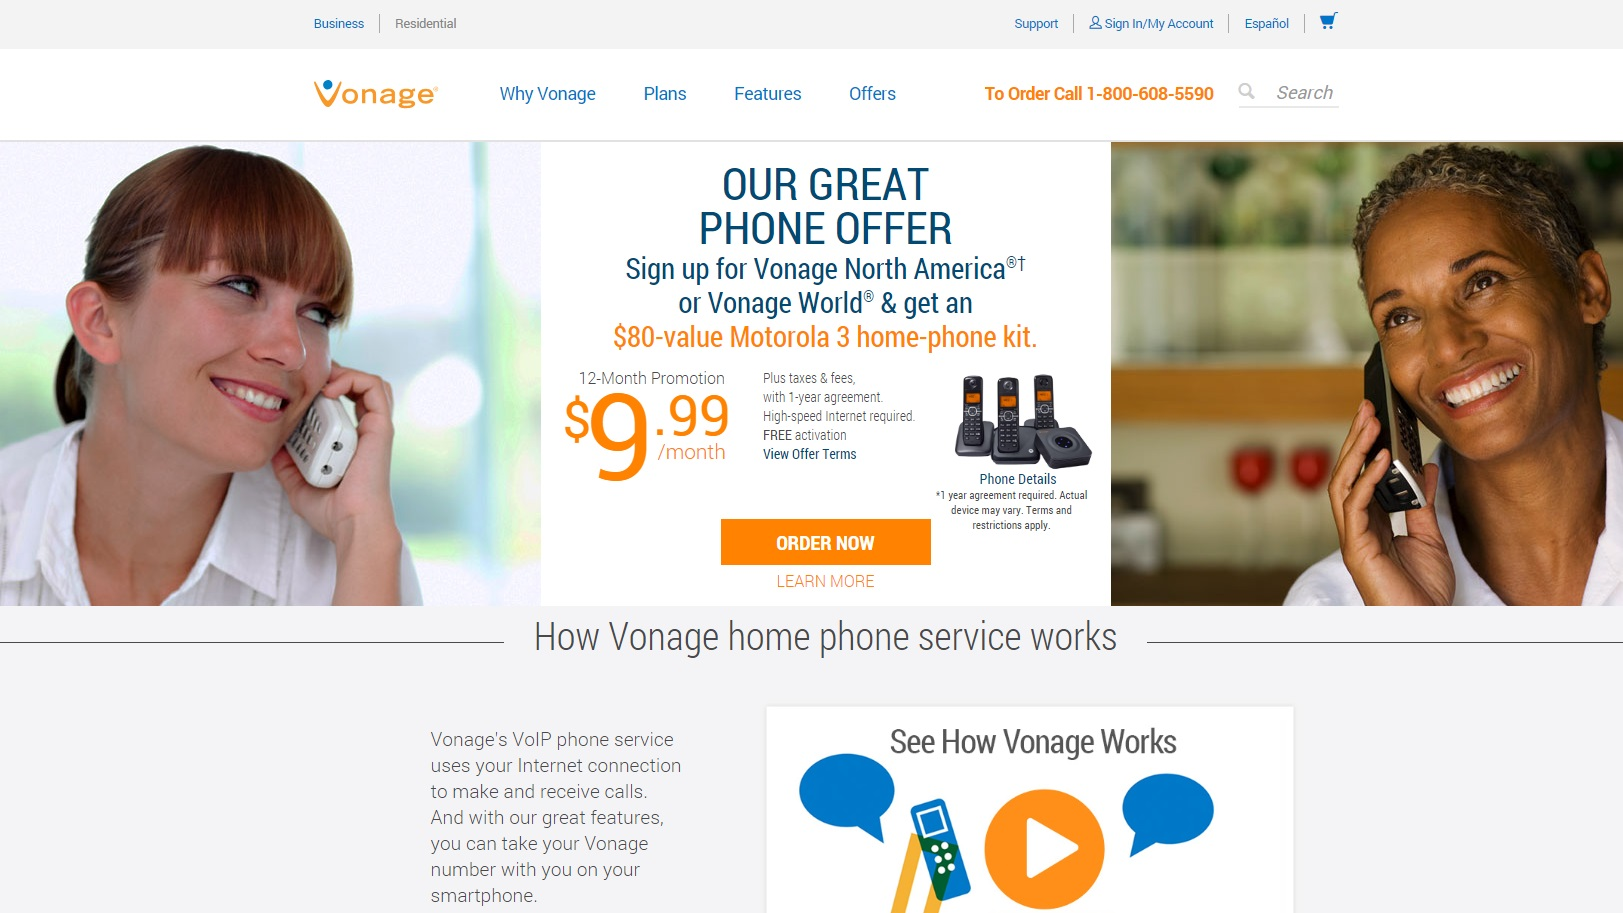 Vonage Residential